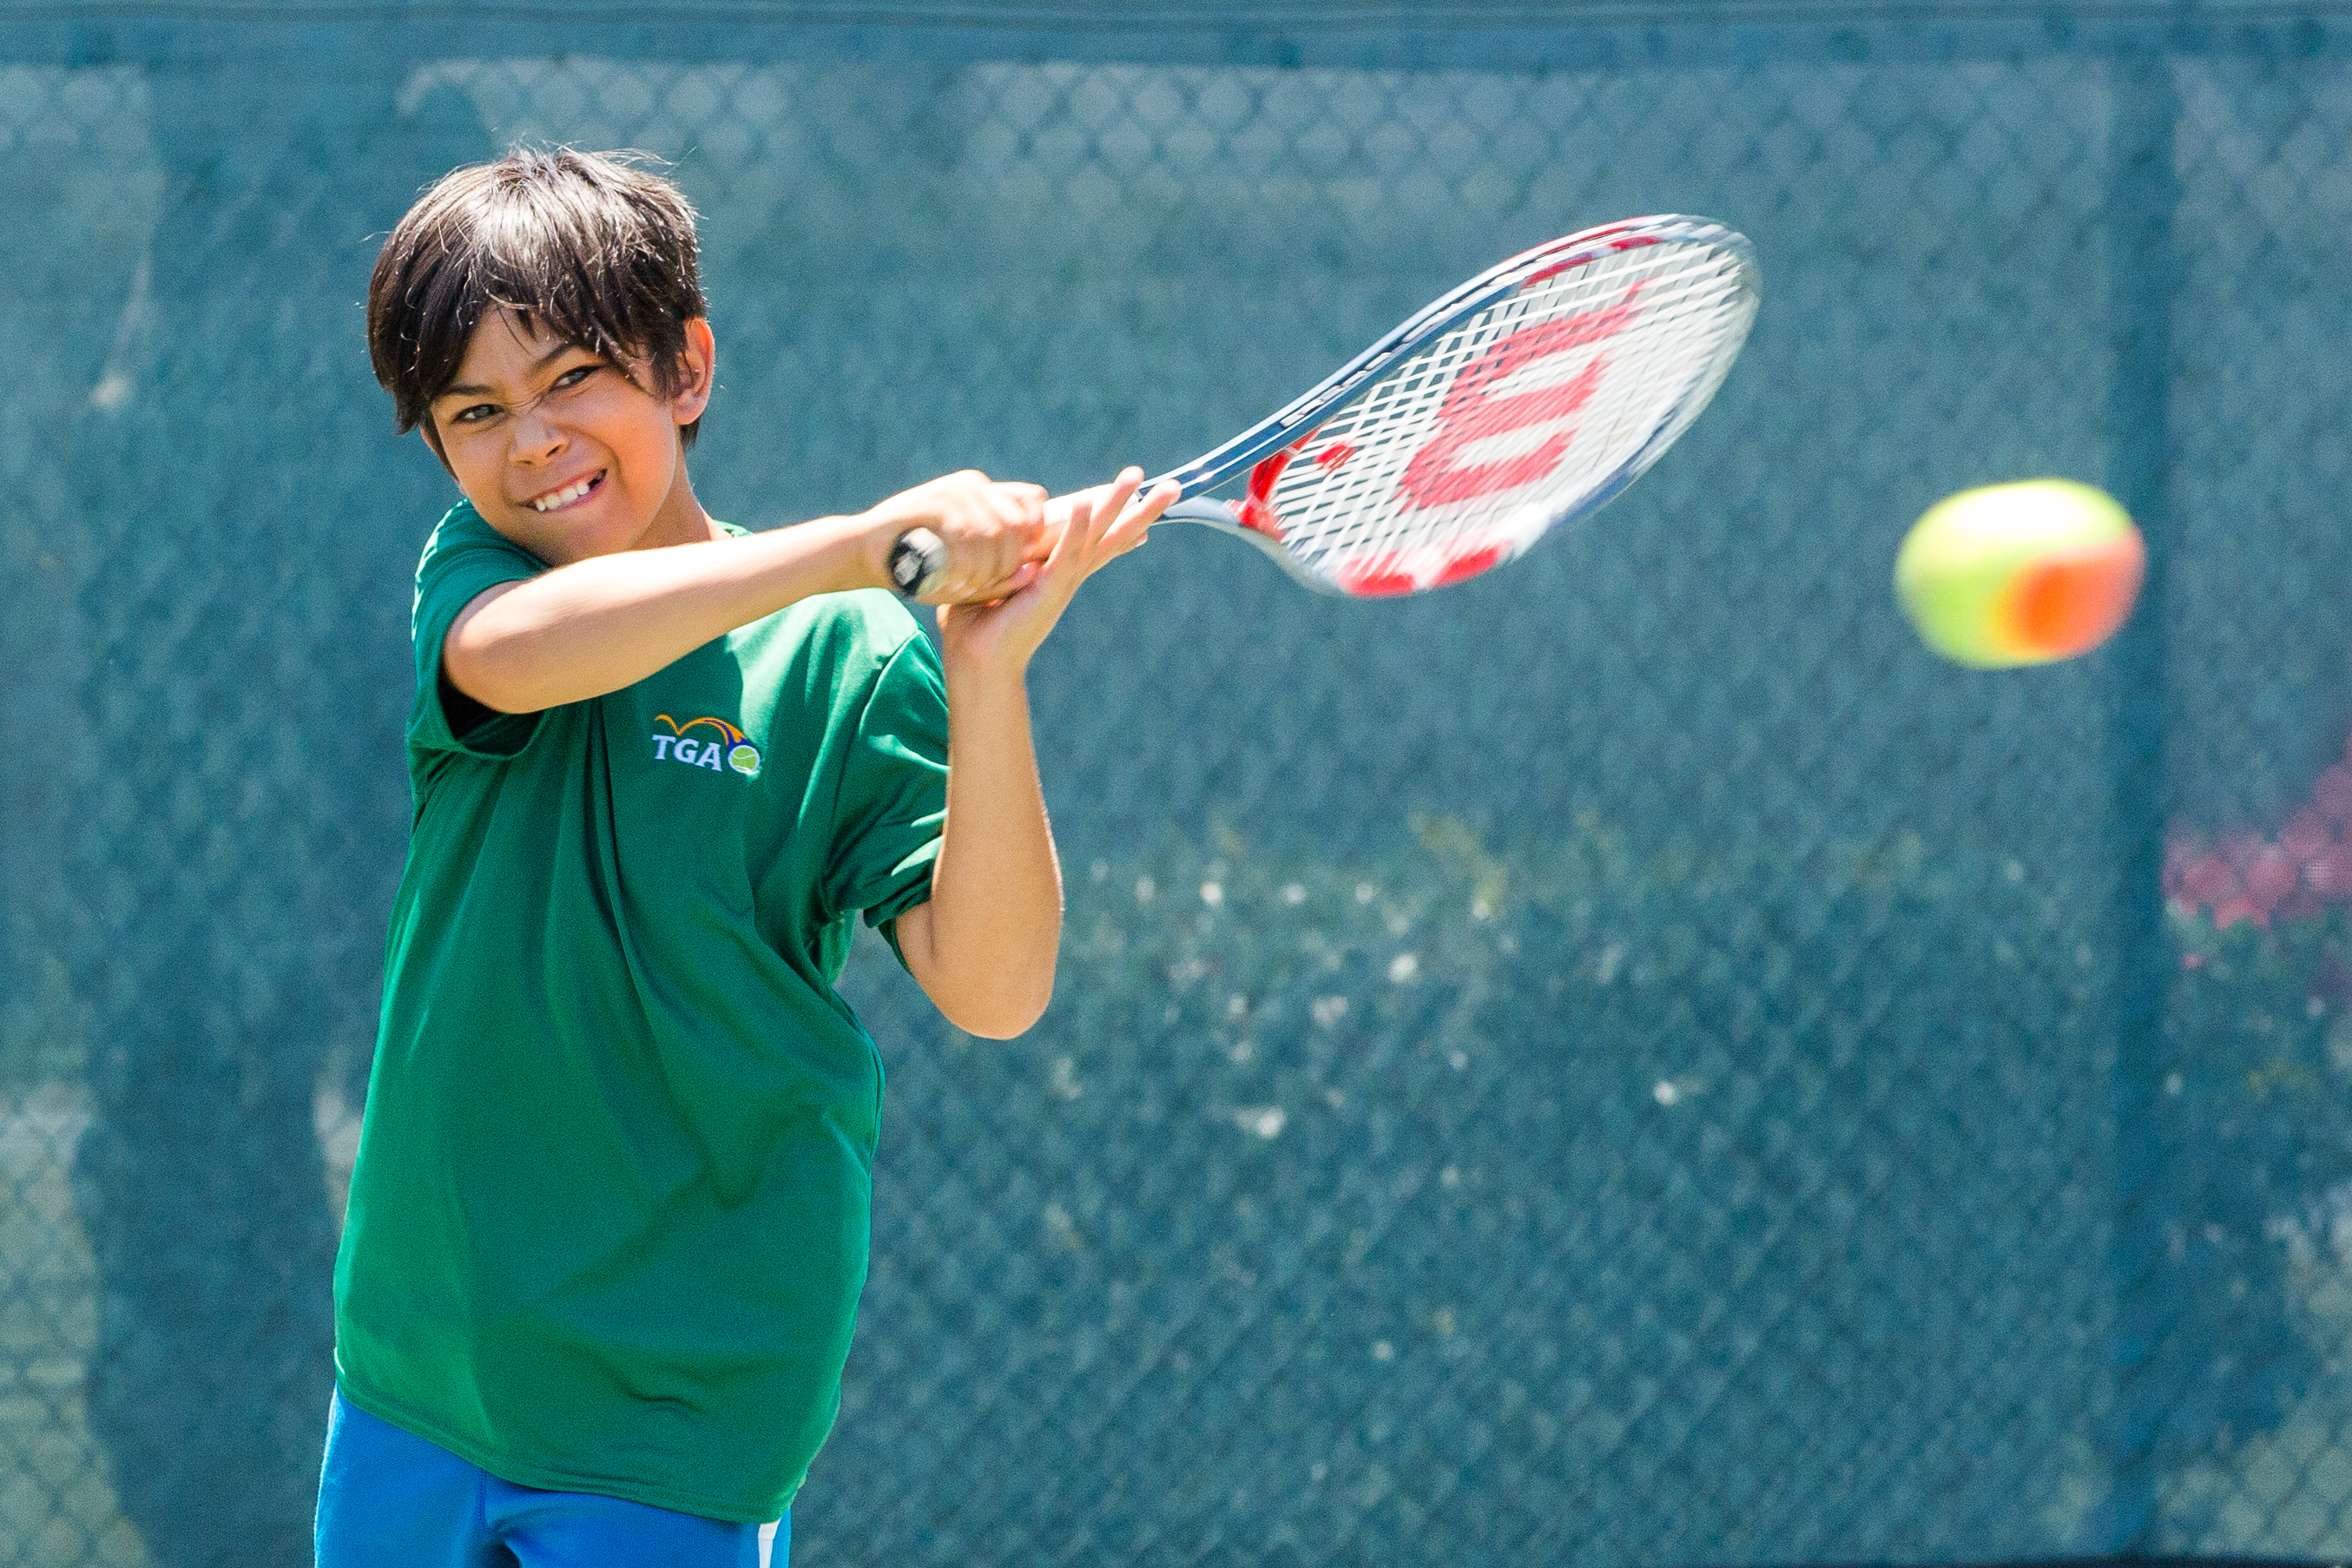 TGA Tennis Middle School Club